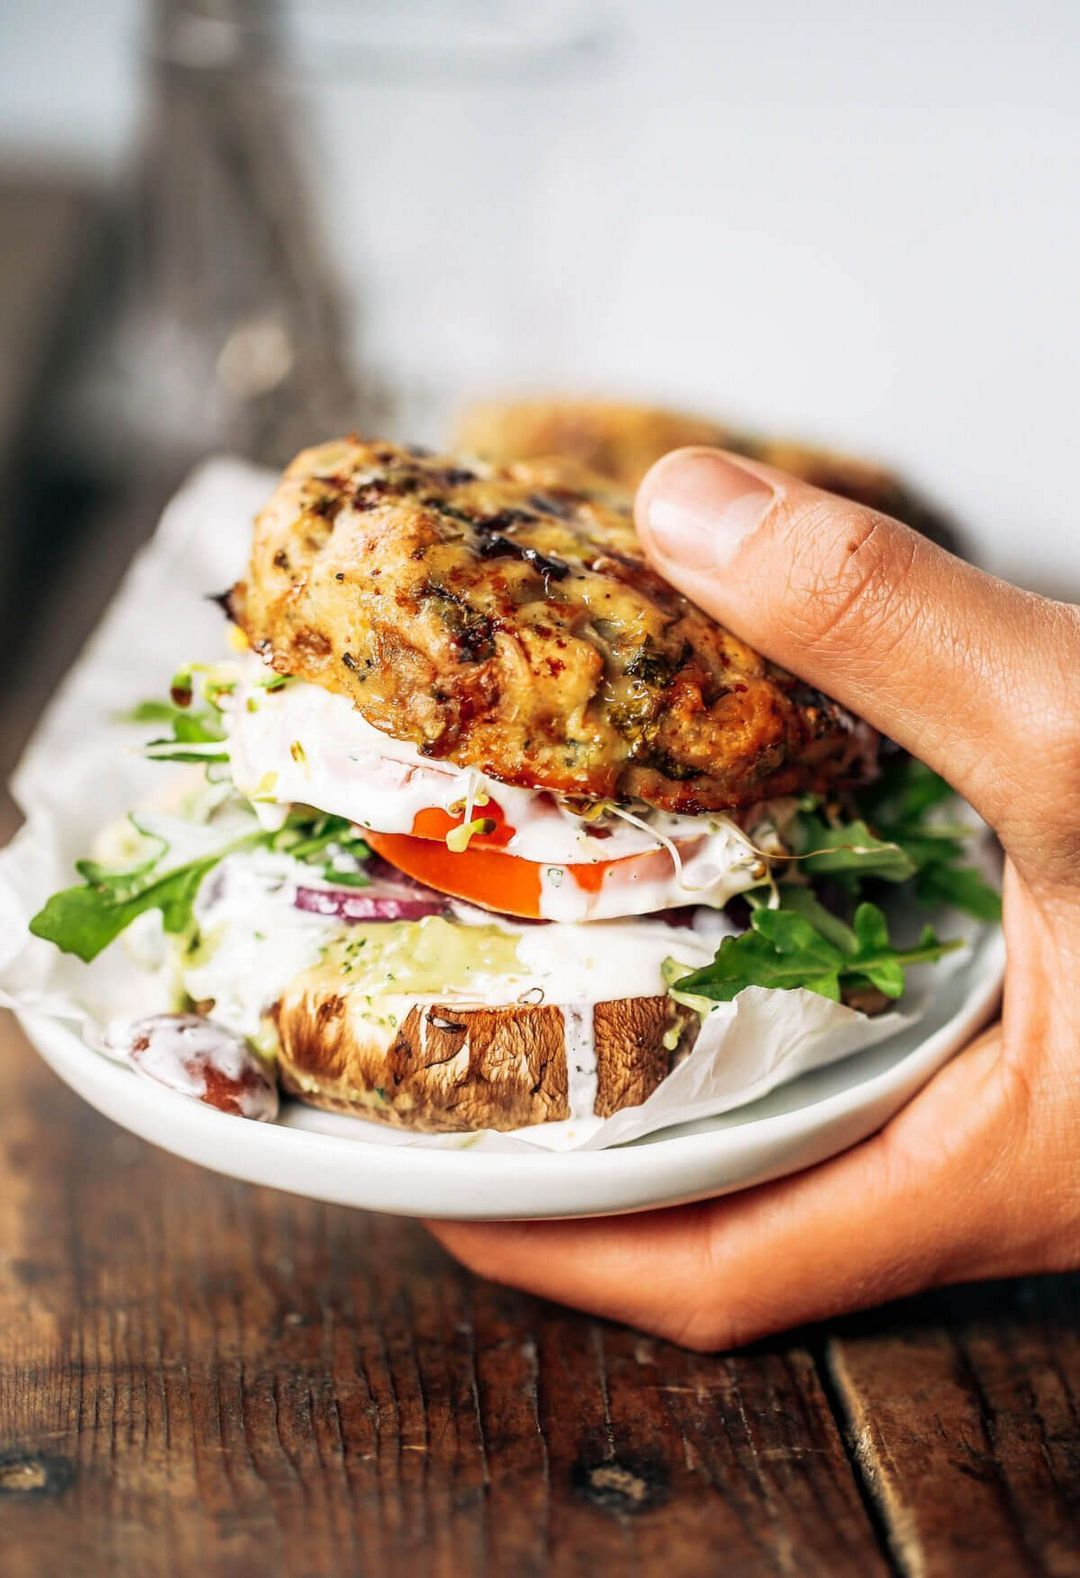 The Turkey Burger Has Come To Be The Nutritious Default Of Grilling Season Make Sure Your Grate Is Well Oiled In Order For Your Burger Doesnt Stick